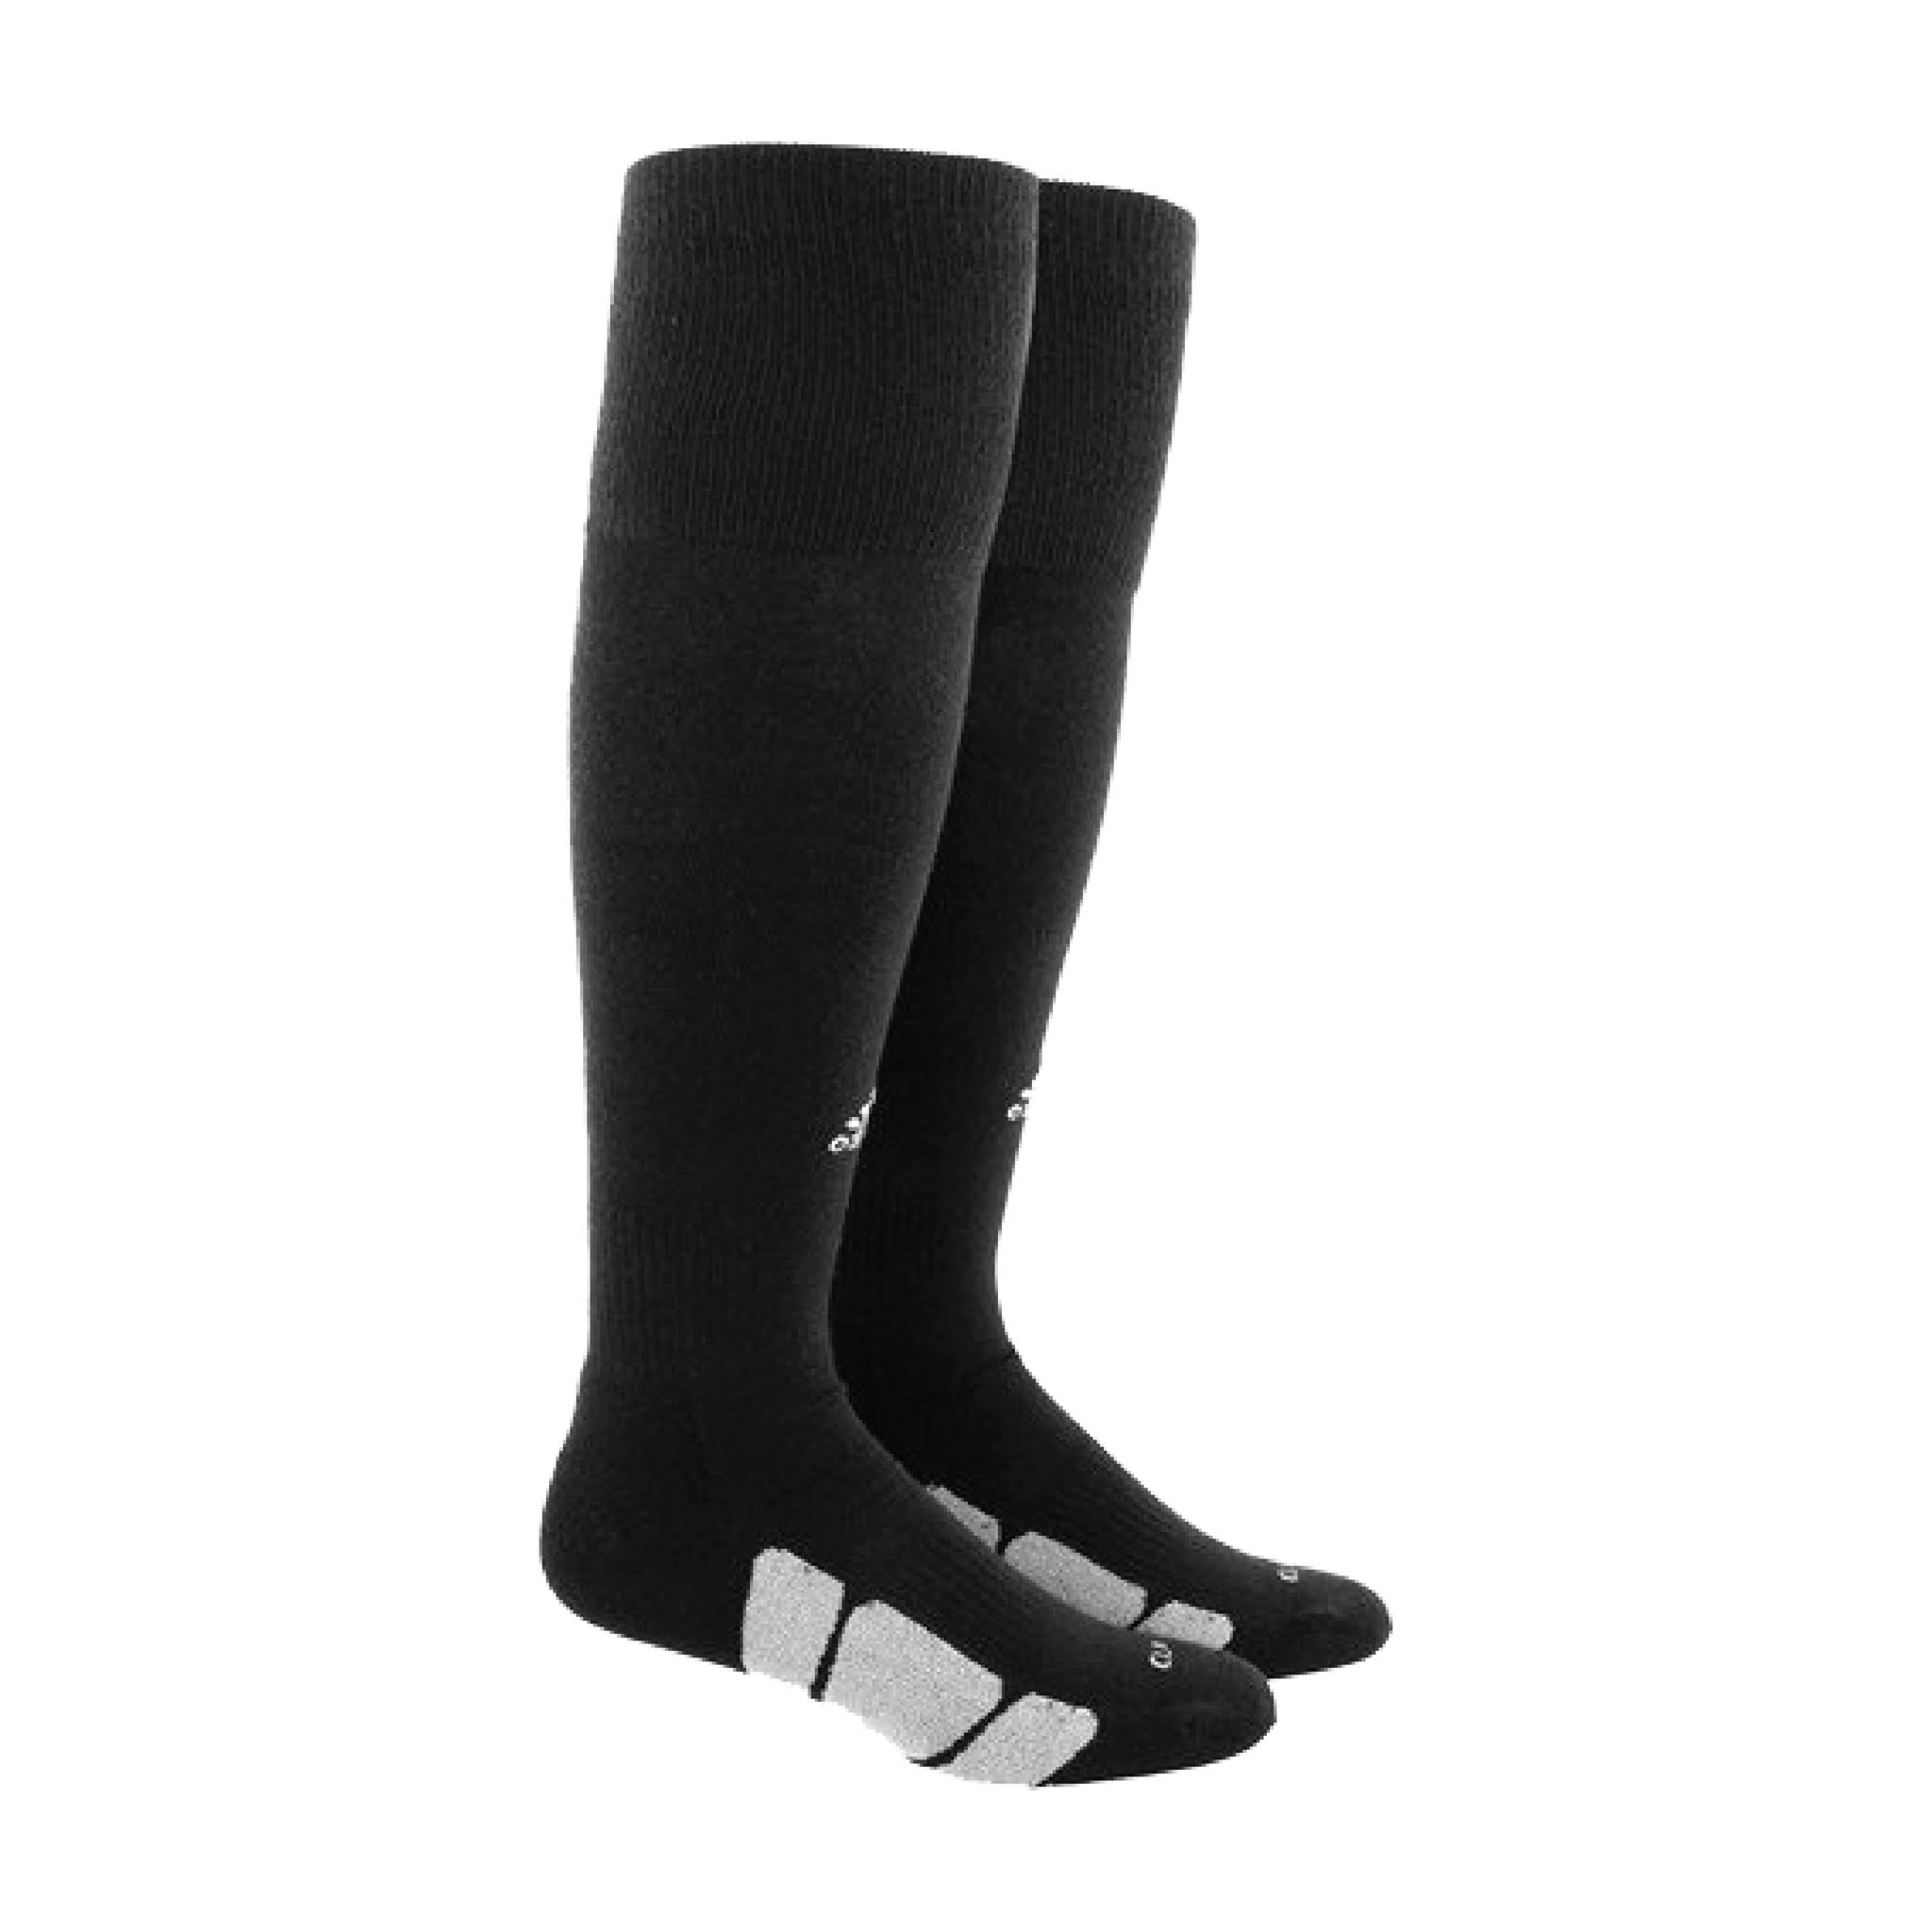 Adidas Utility Long Soccer Socks - Black, X-Small